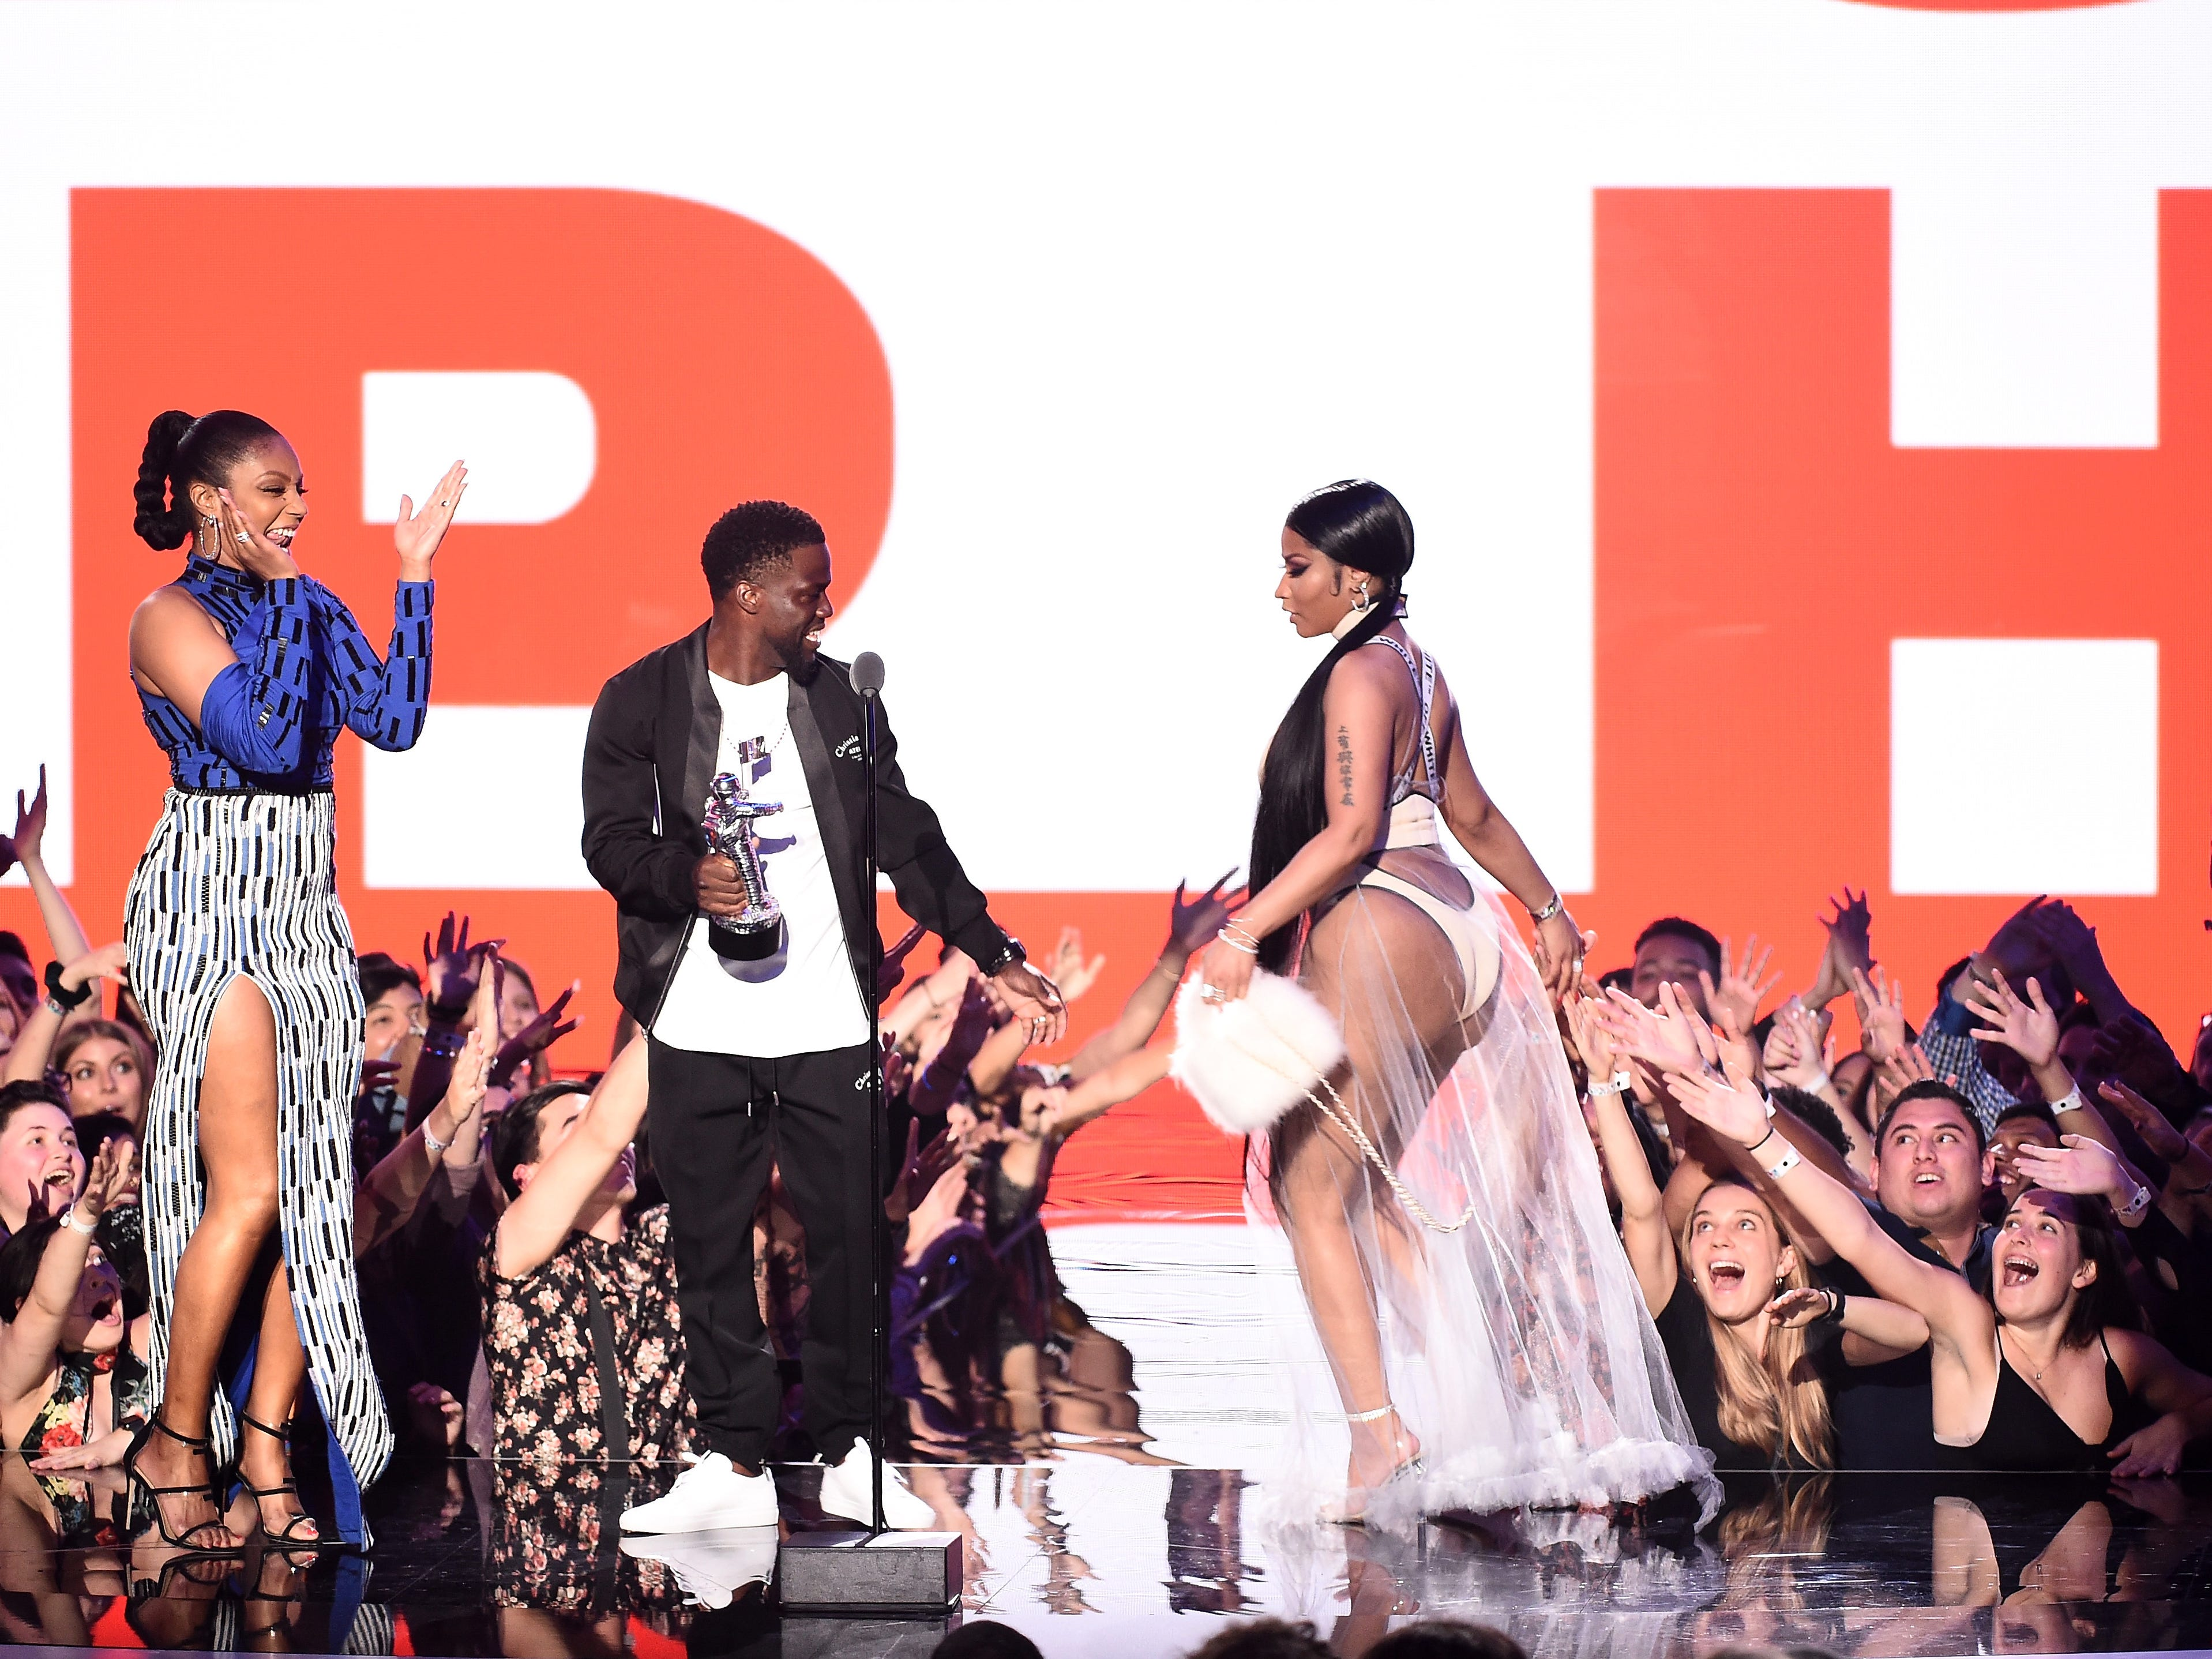 NEW YORK, NY - AUGUST 20:  Tiffany Haddish and Kevin Hart present Nicki Minaj with the award for Best Hip Hop Video onstage during the 2018 MTV Video Music Awards at Radio City Music Hall on August 20, 2018 in New York City.  (Photo by Michael Loccisano/Getty Images for MTV) ORG XMIT: 775210297 ORIG FILE ID: 1020305014